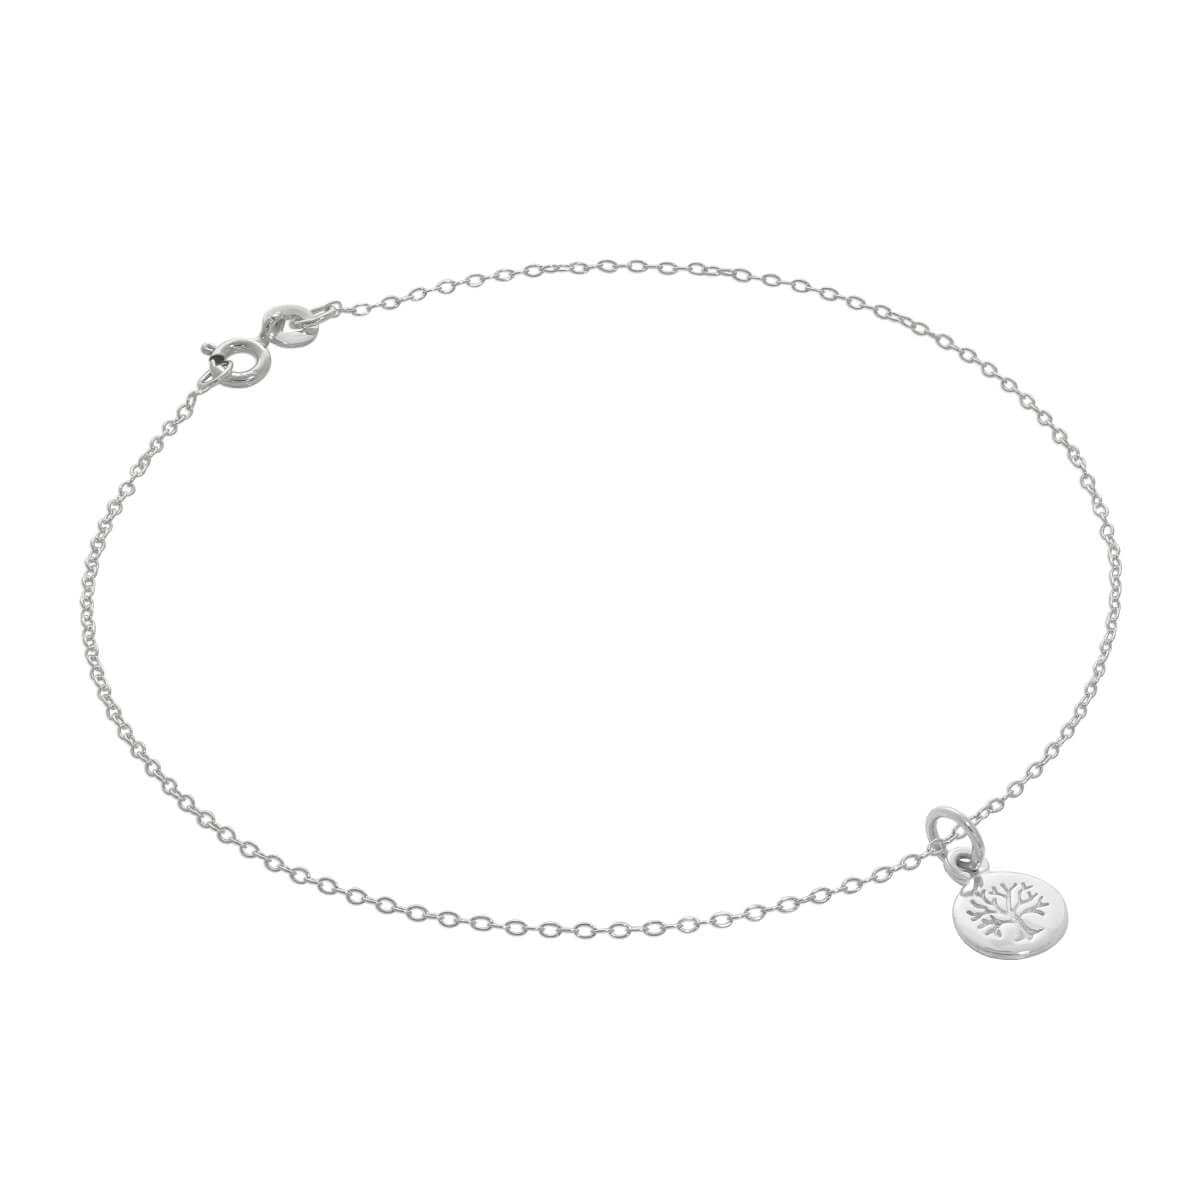 Fine Sterling Silver Belcher Anklet with Tiny Tree of Life Charm - 10 Inches